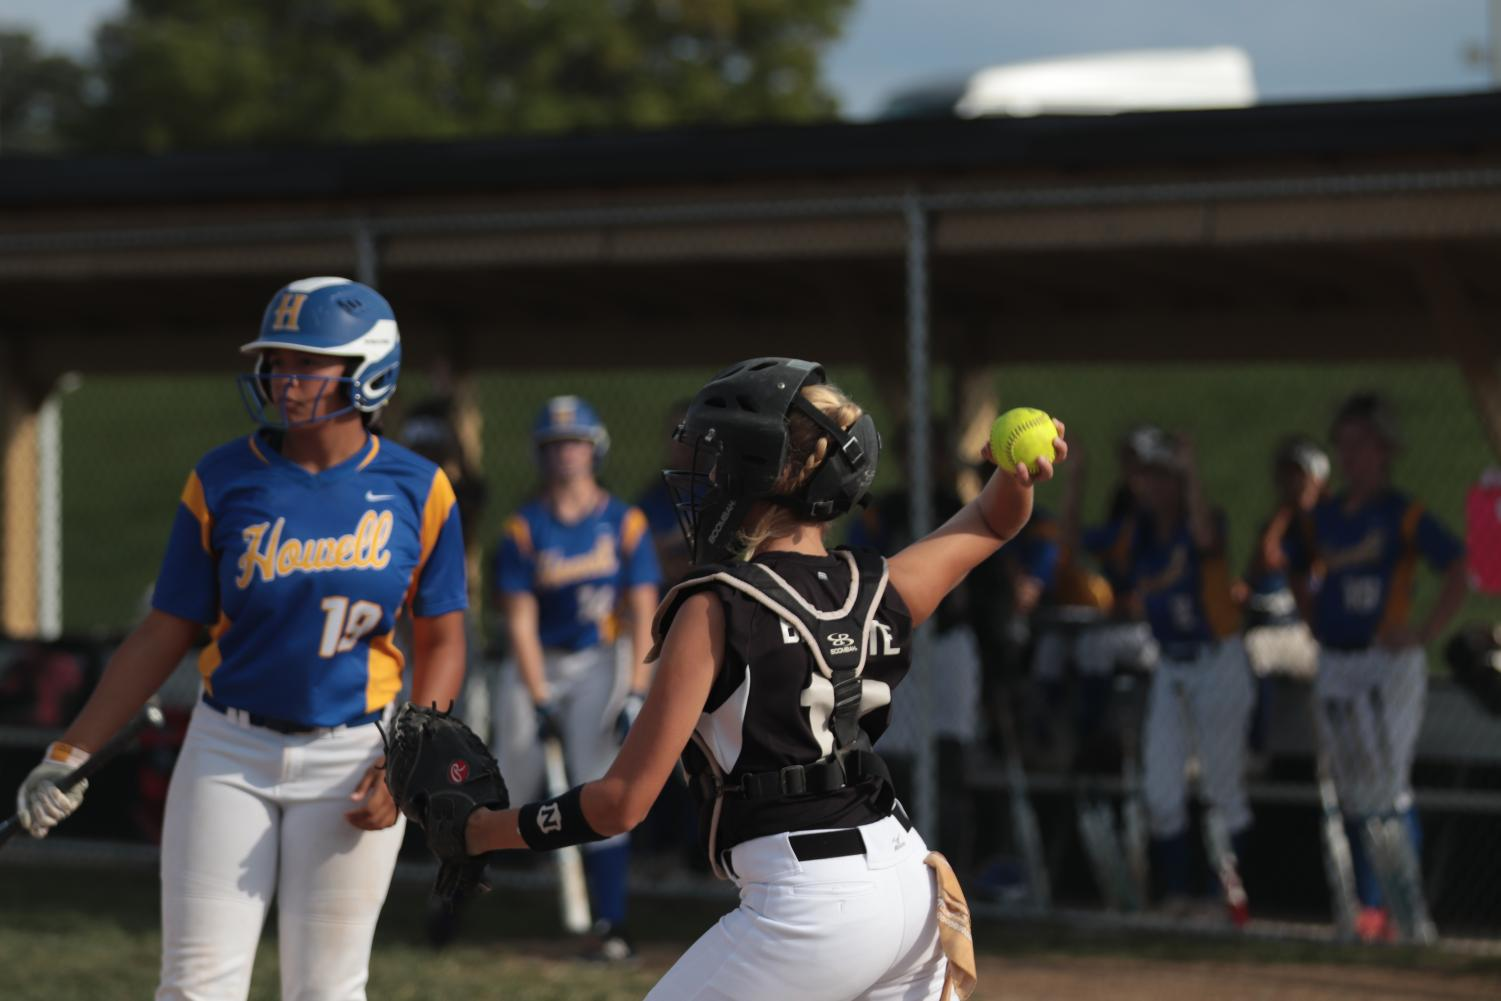 Sophomore Becka Brissete prepares to throw the ball in an attempt to throw out a runner stealing a base against FHHS.